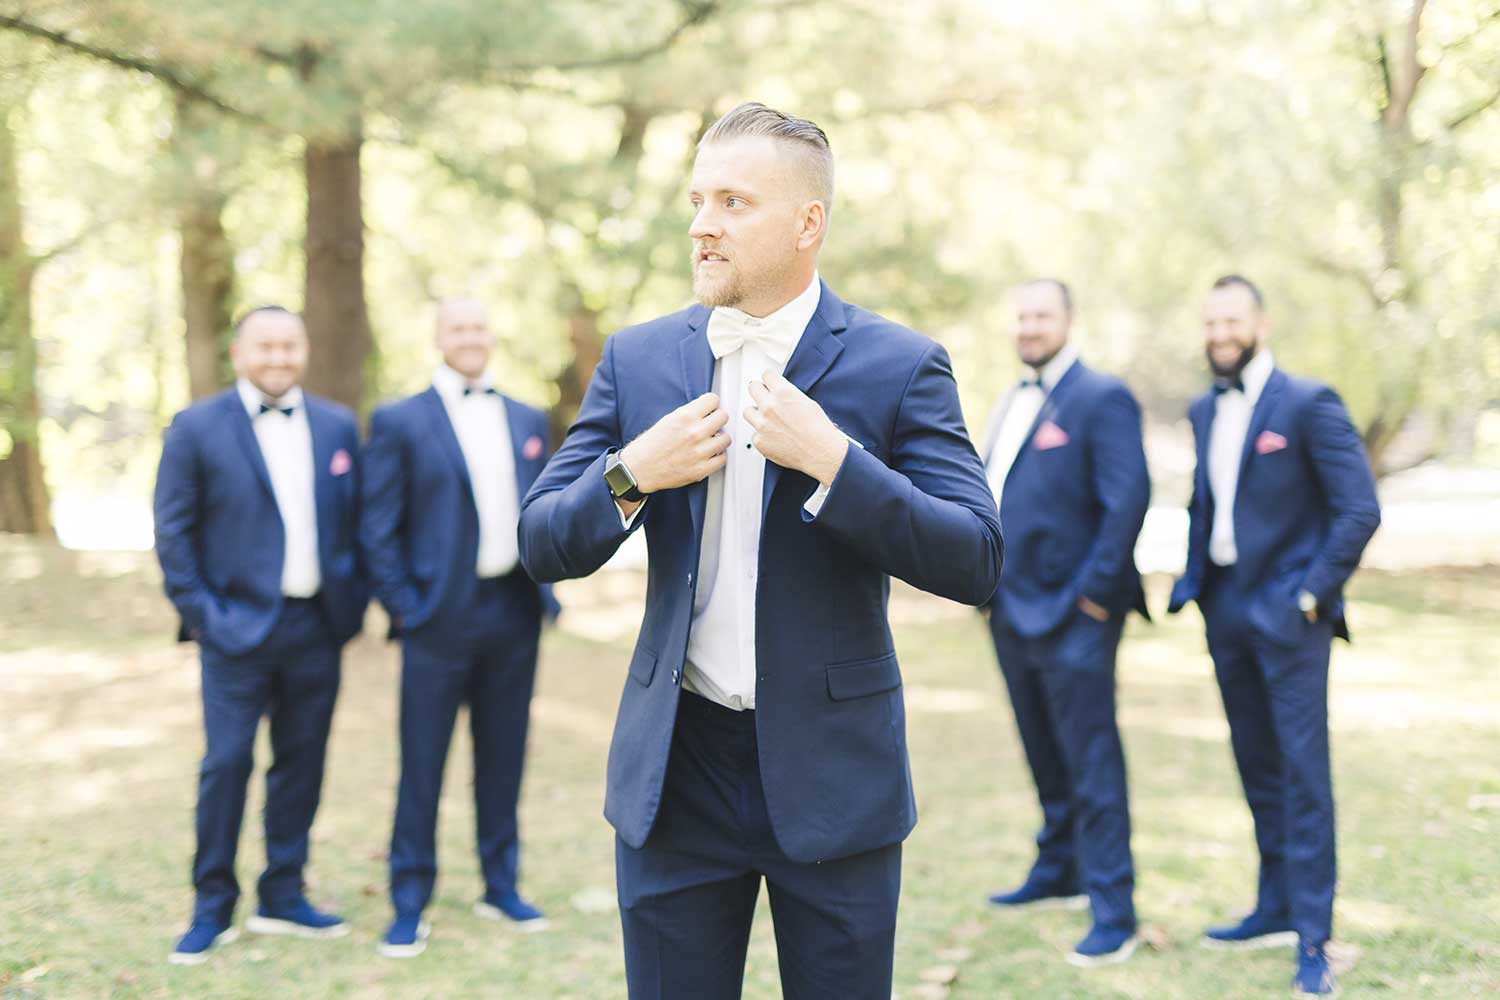 Portrait of Groom with groomsmen in background